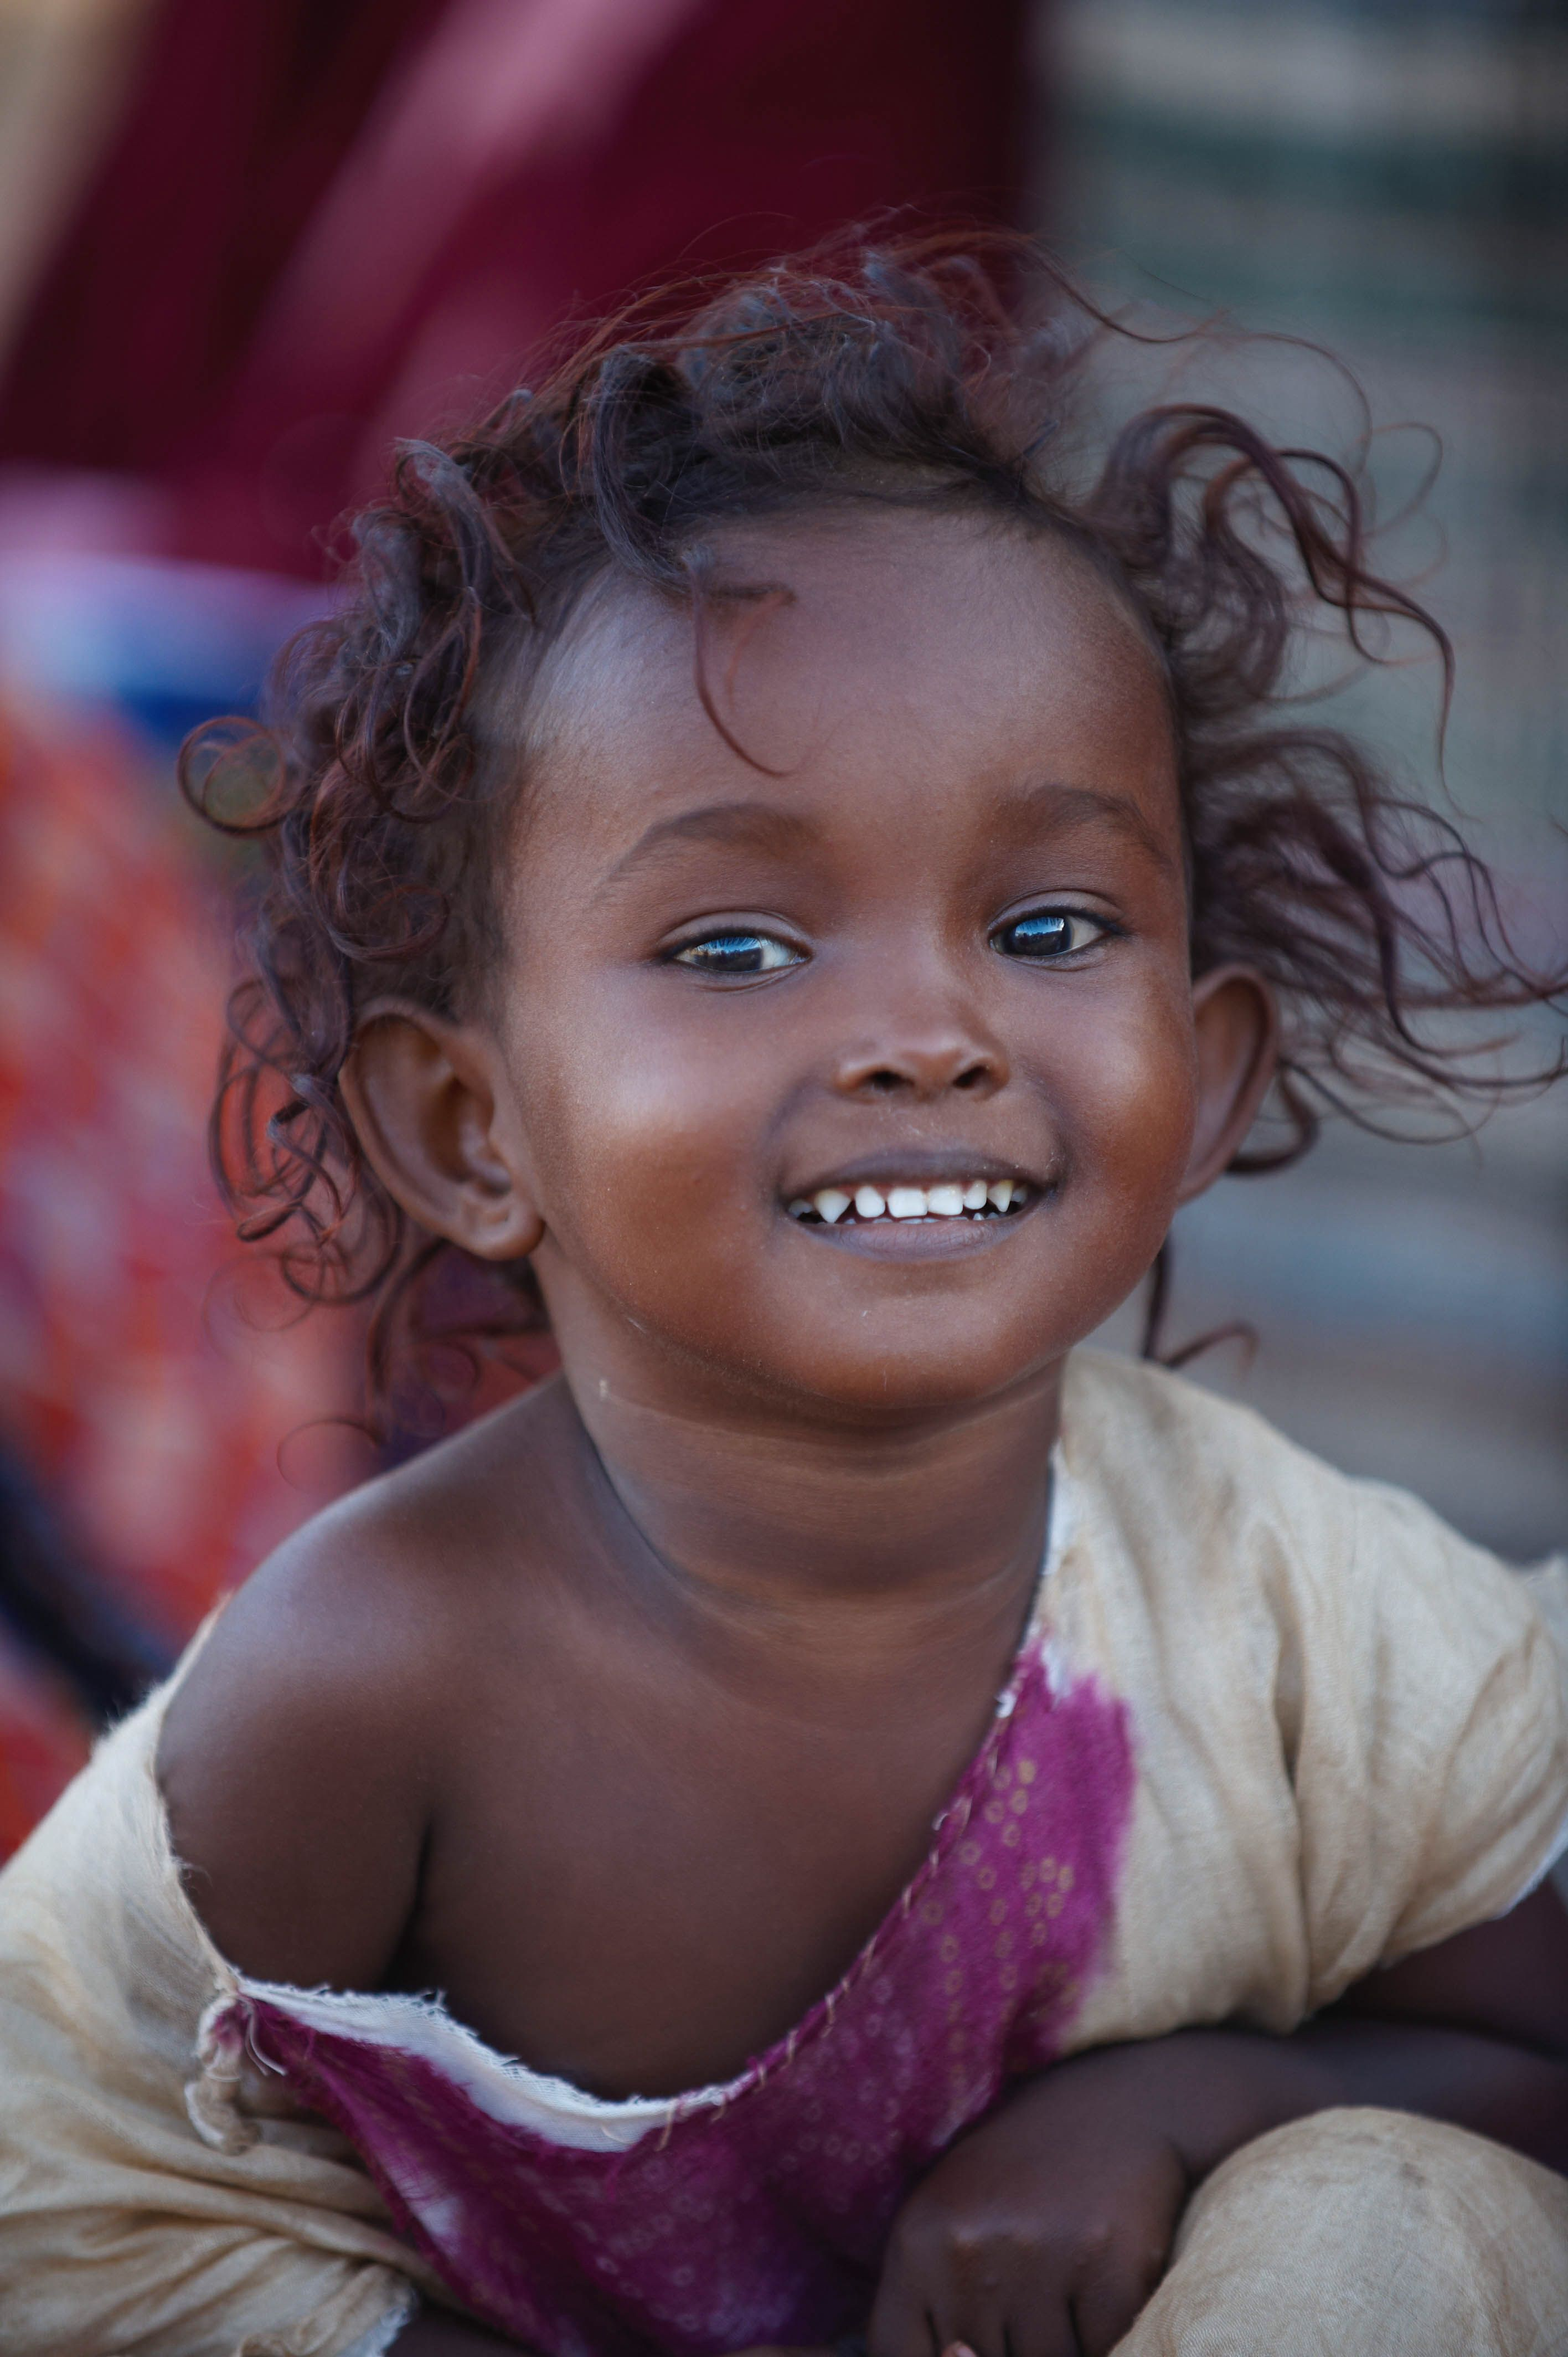 safa idriss nours; THE most beautiful face I have laid my eyes on. I just adore her !!!! ~©®